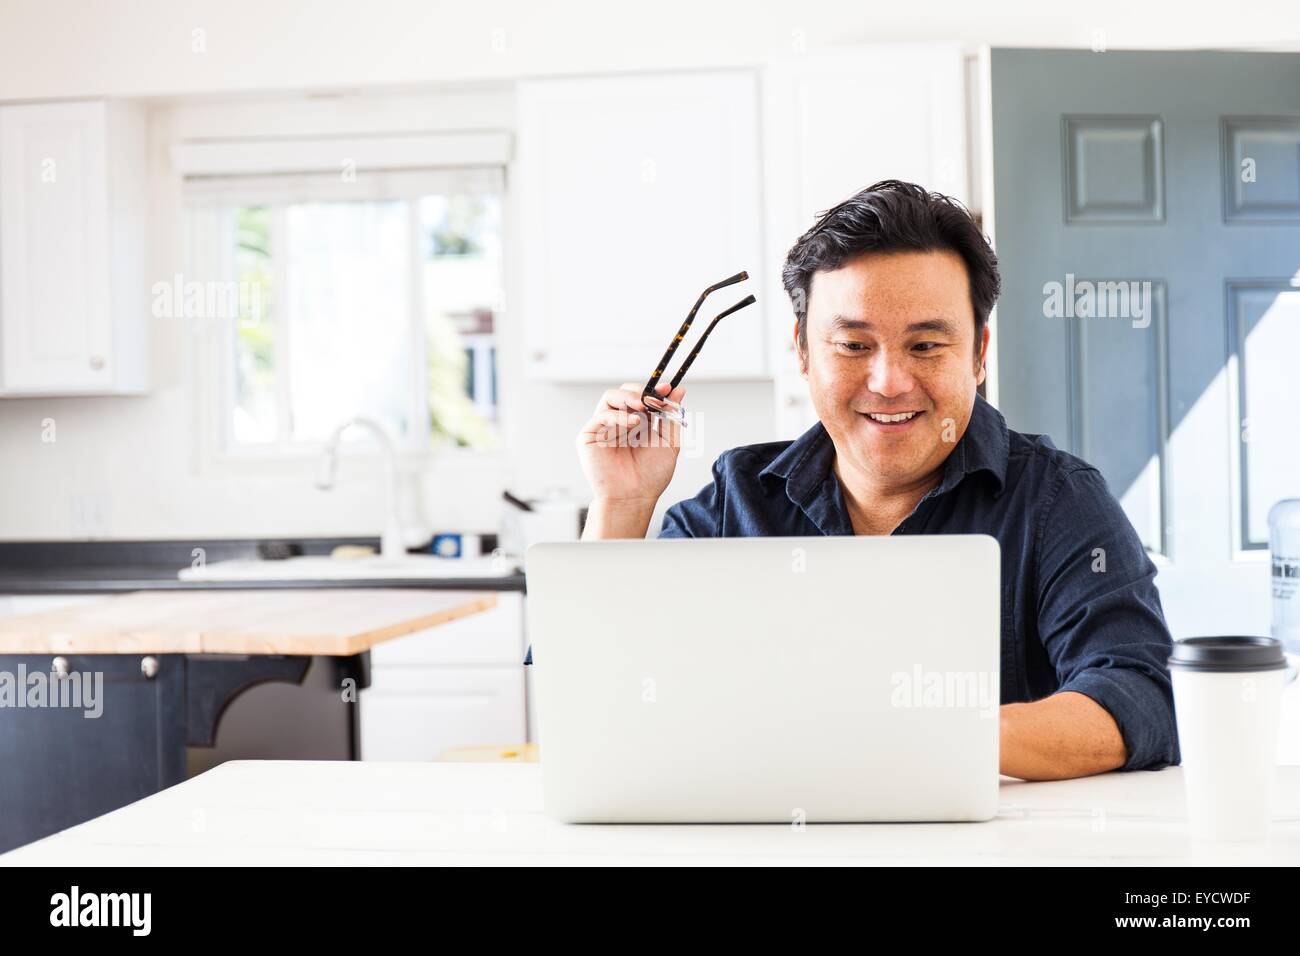 Smiling mature businessman typing on laptop in kitchen Photo Stock